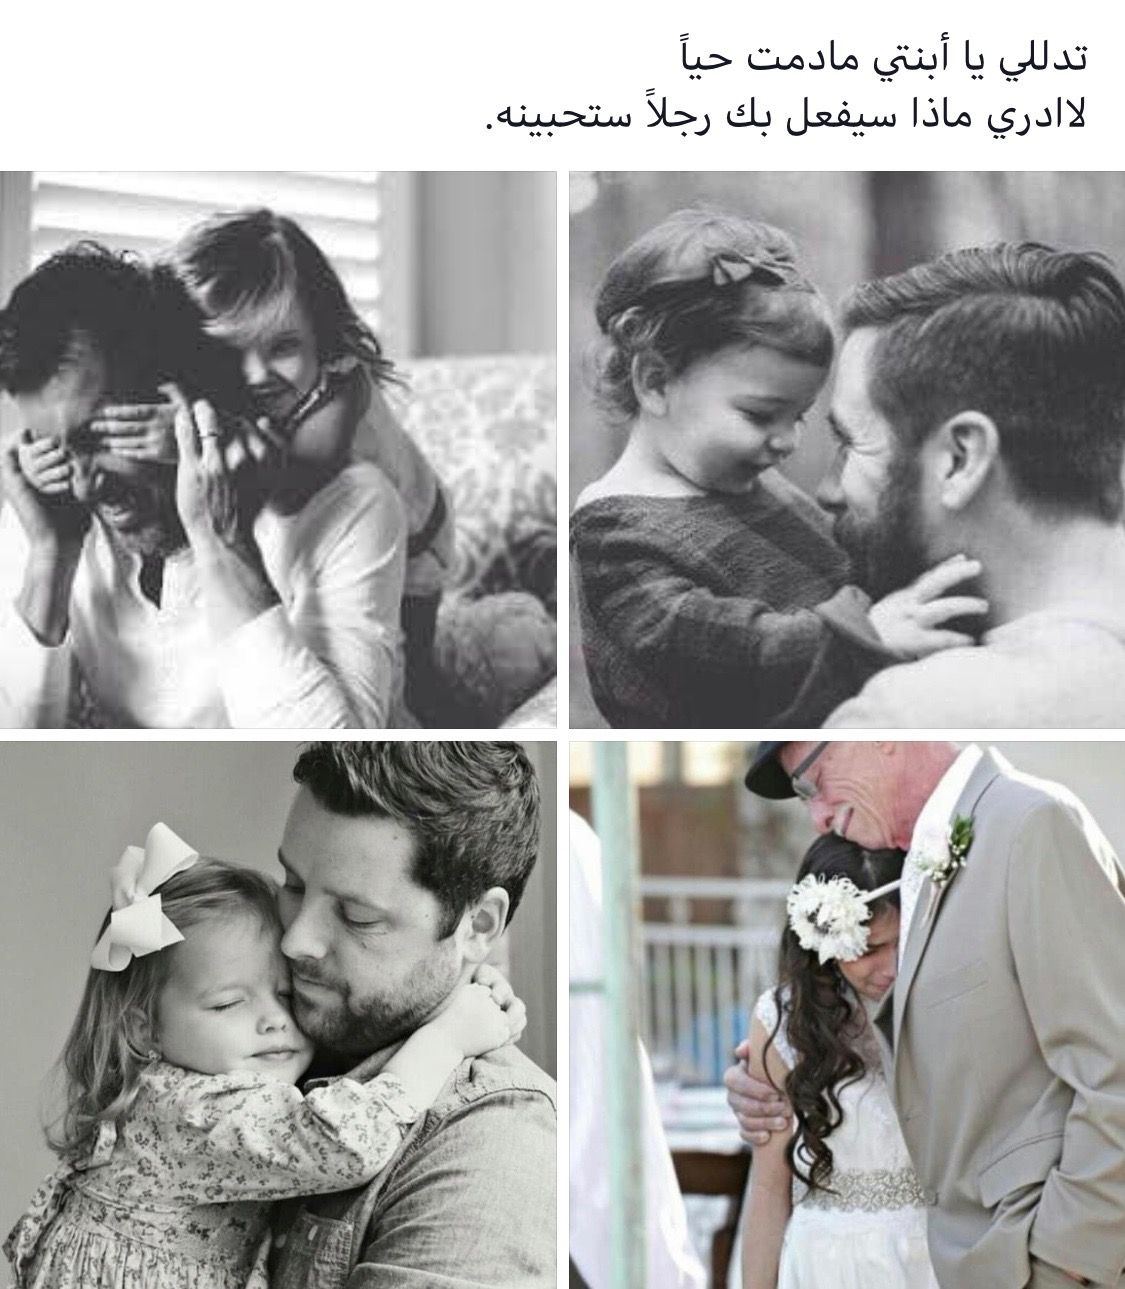 Pin By Samar Anan On أبي وأمي Instagram Profile Picture Ideas Dad Baby Cute Cartoon Wallpapers